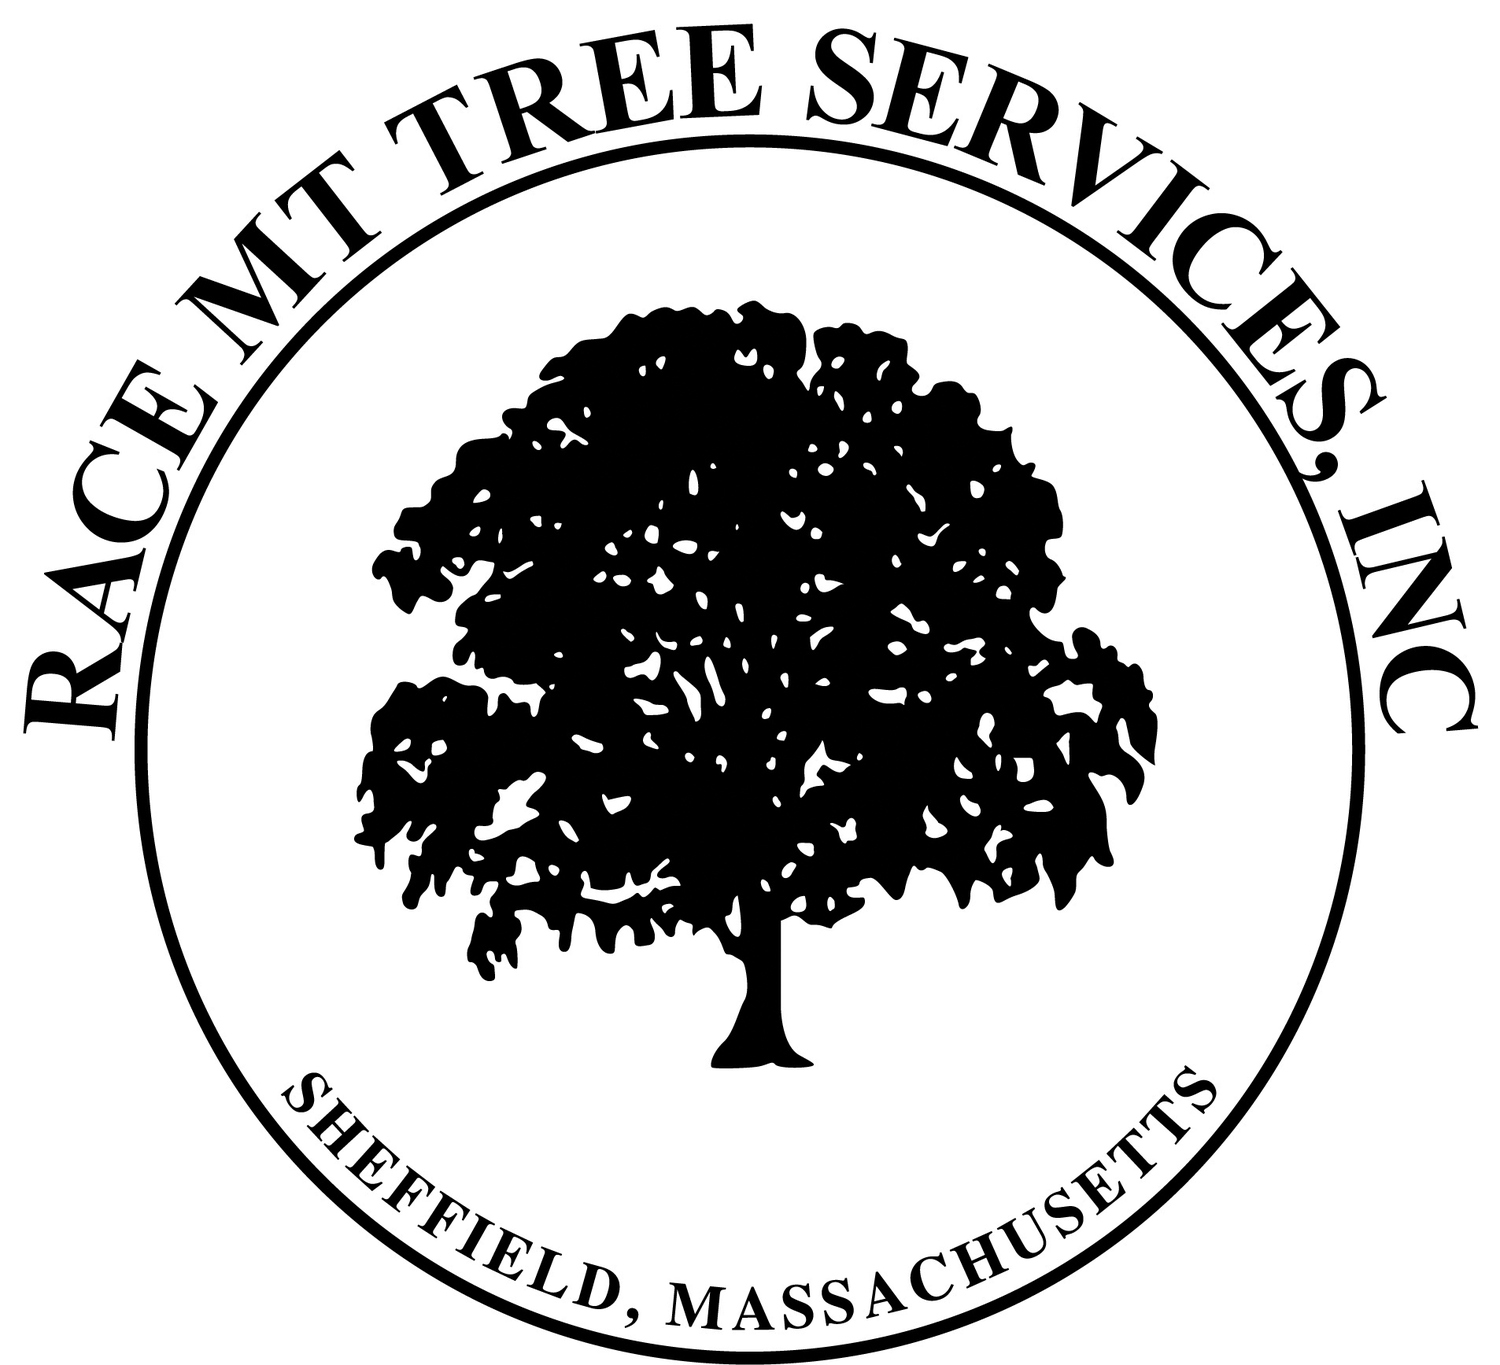 Race Mountain Tree Services, Inc. - Sheffield, MA - Professional Tree Care in The Berkshires, MA, CT, NY